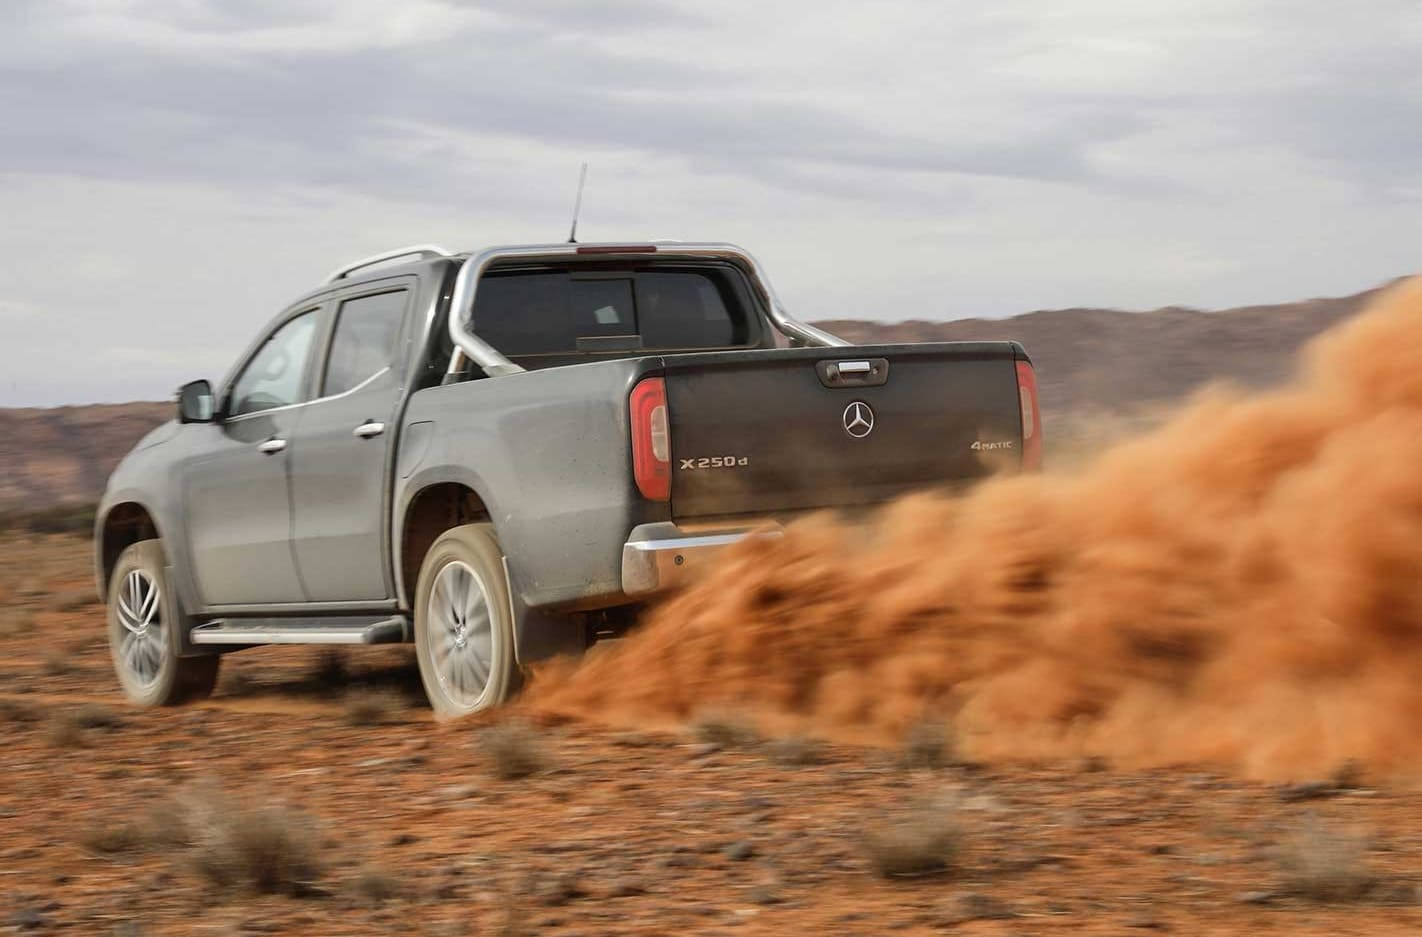 The X-Class is its own ute